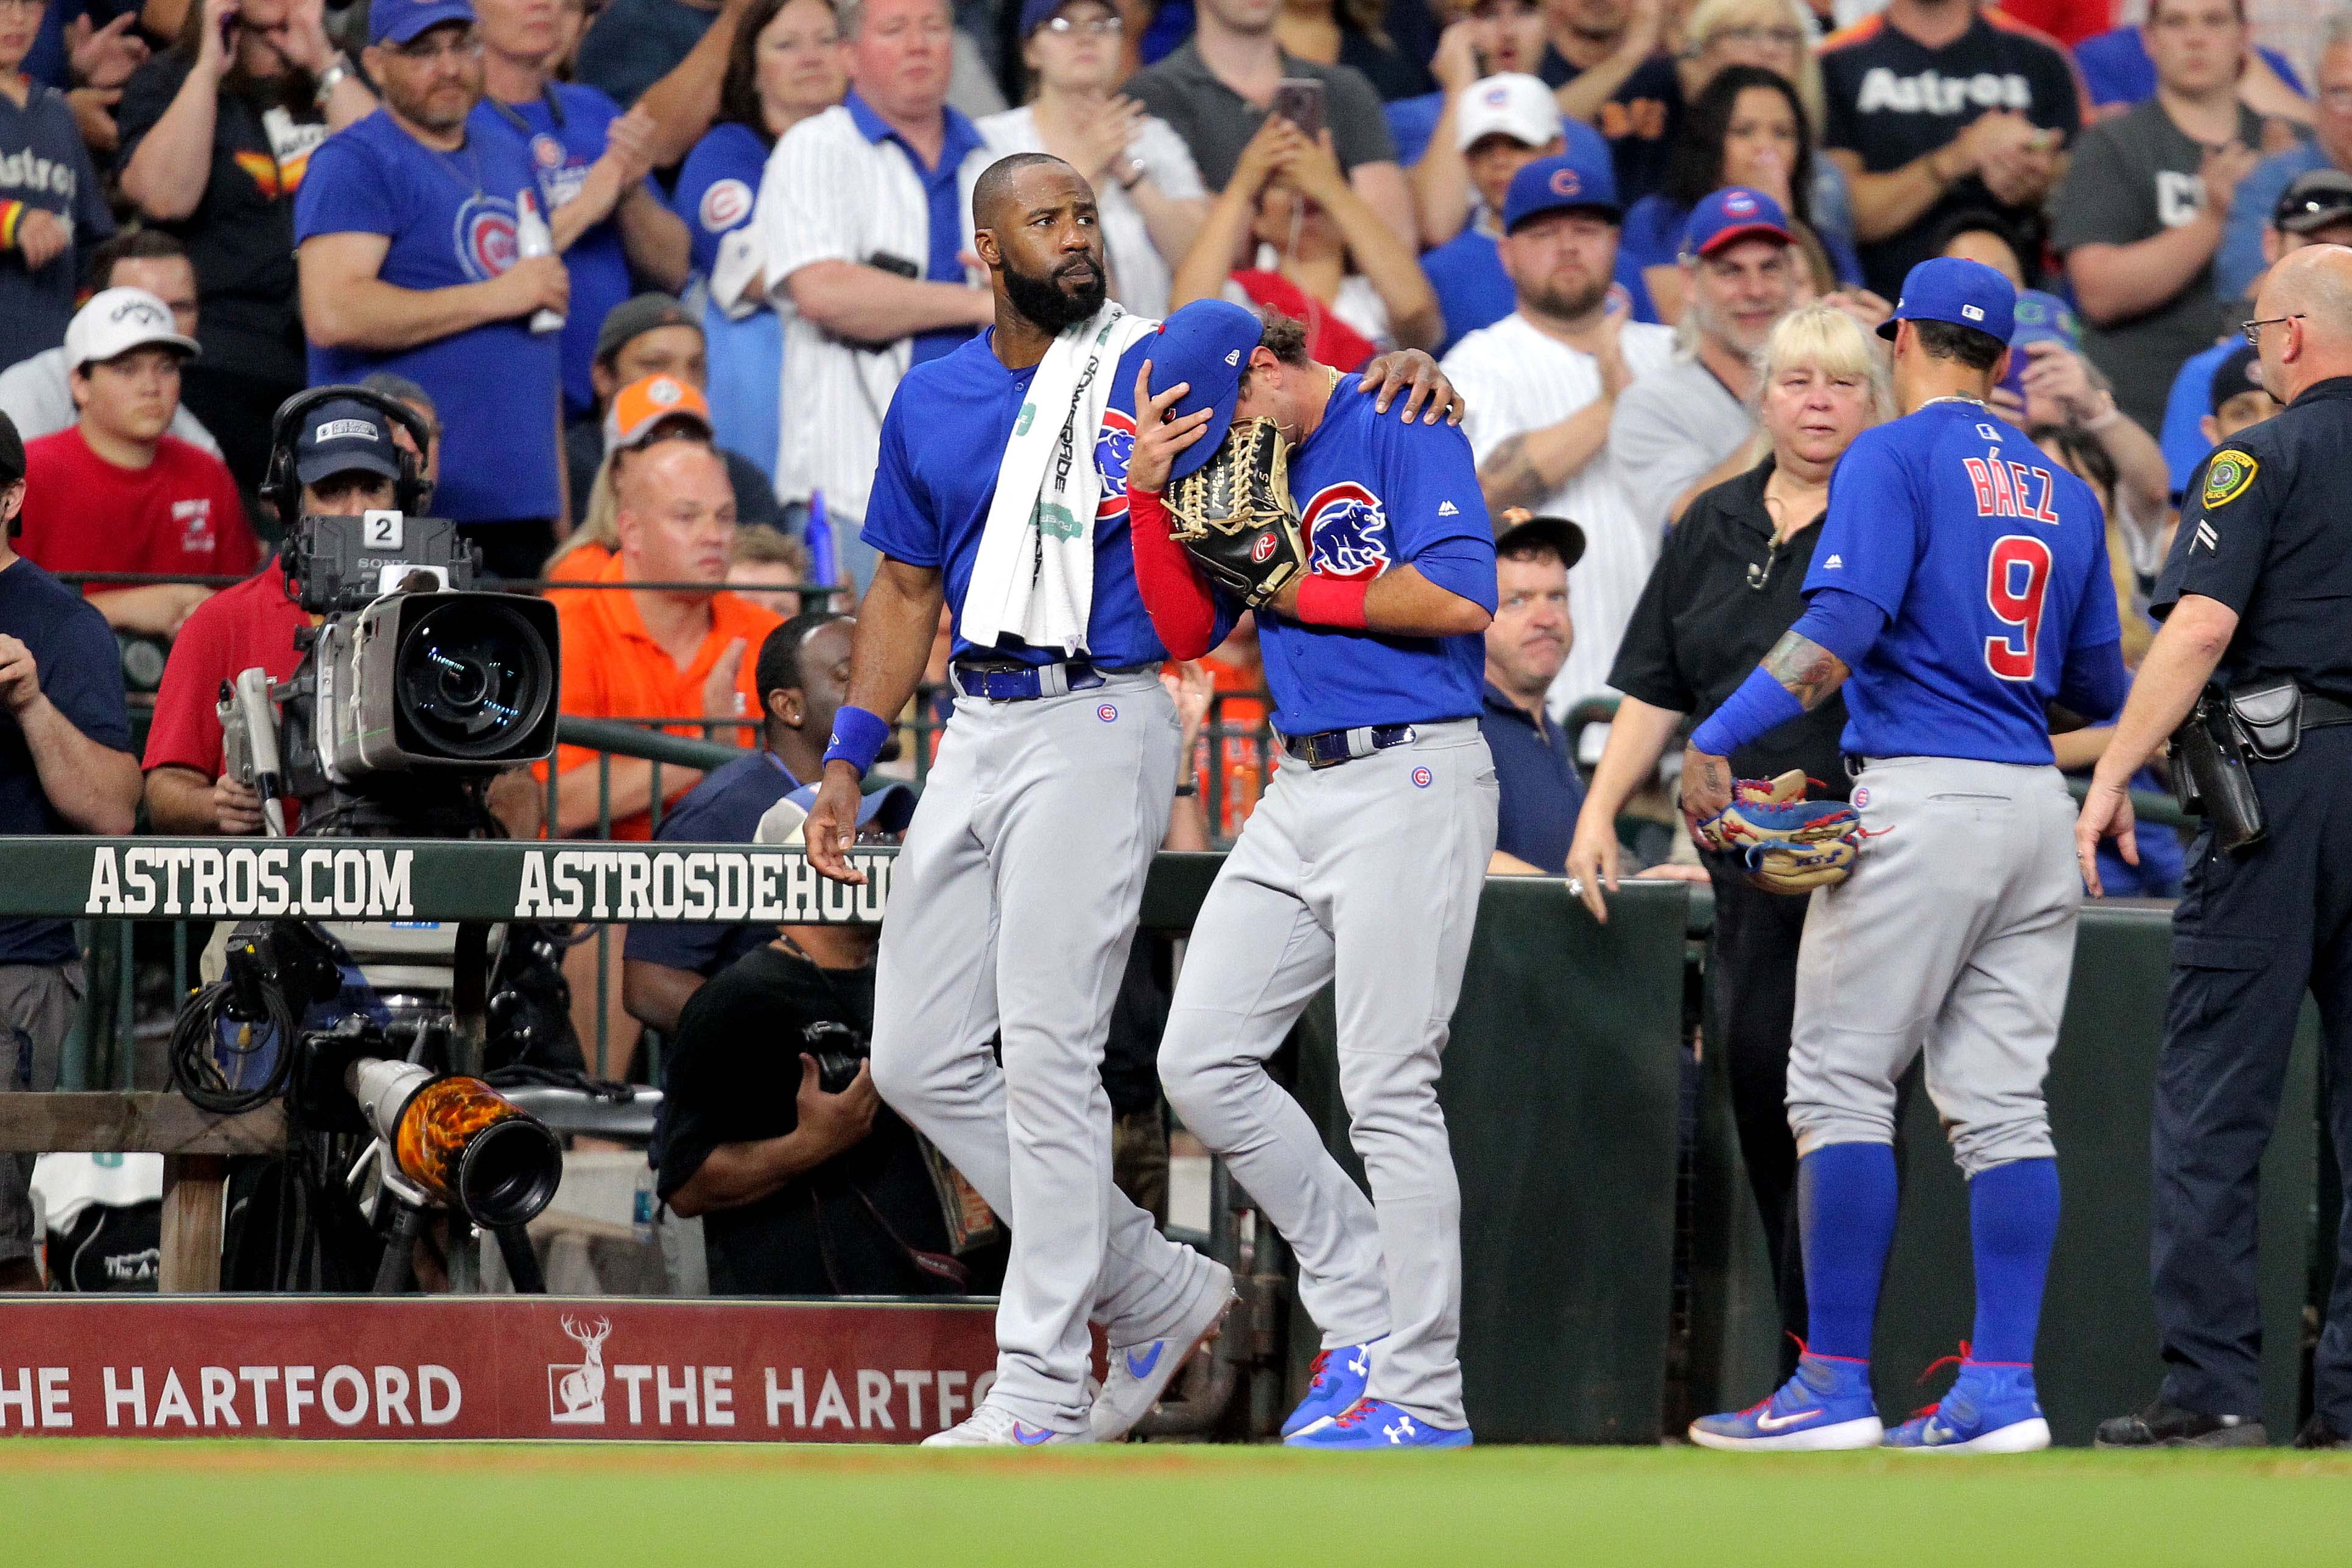 MLB: Chicago Cubs at Houston Astros